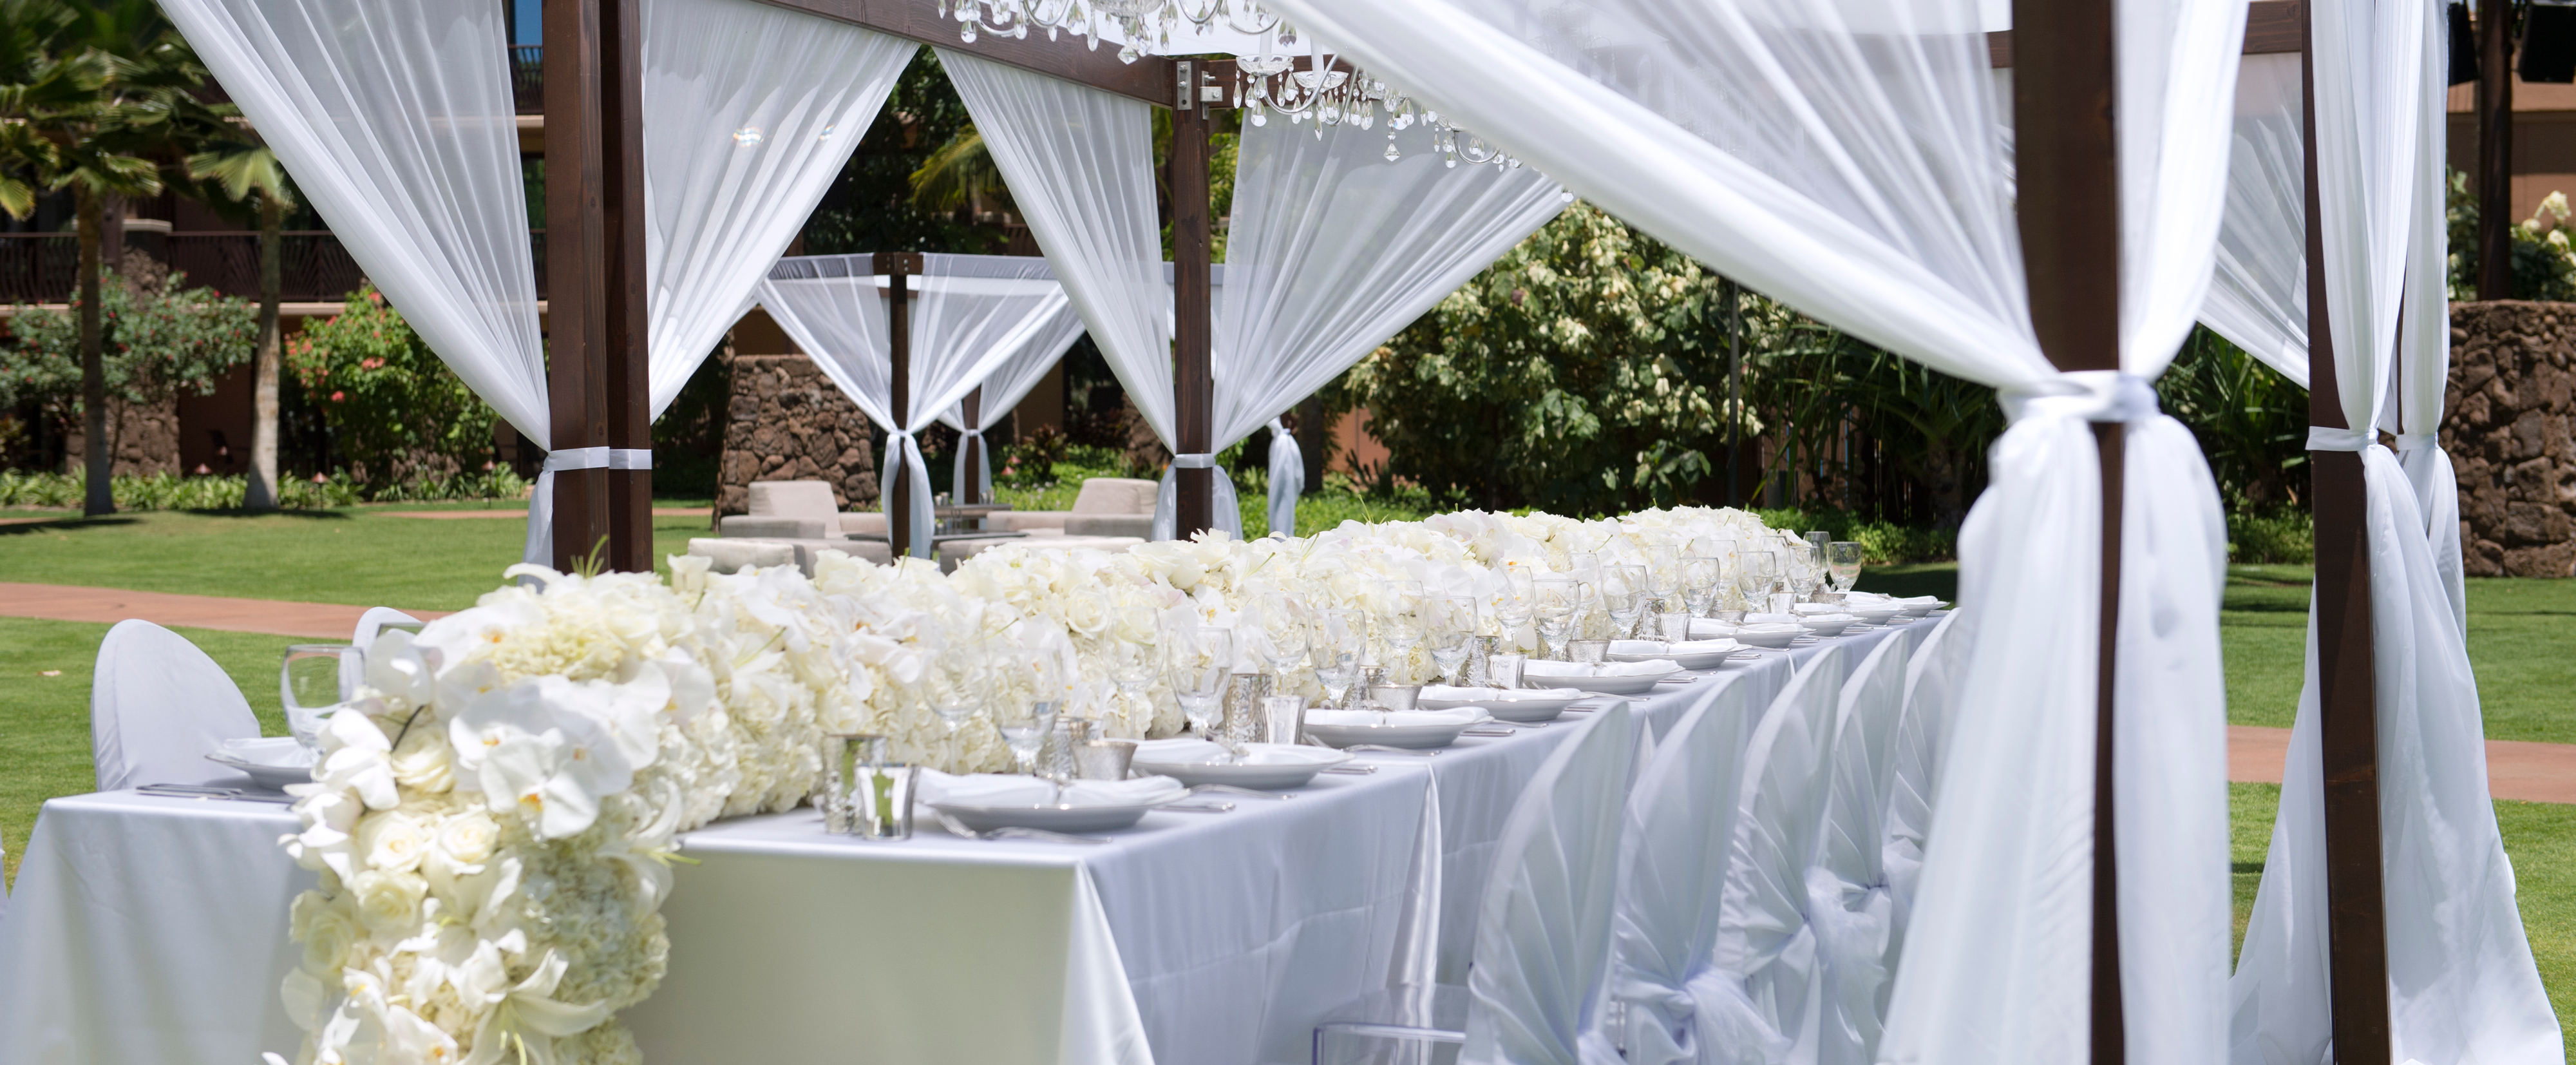 a wedding party banquet table decorated with a garland of white roses and orchids under a - Multi Canopy Decor